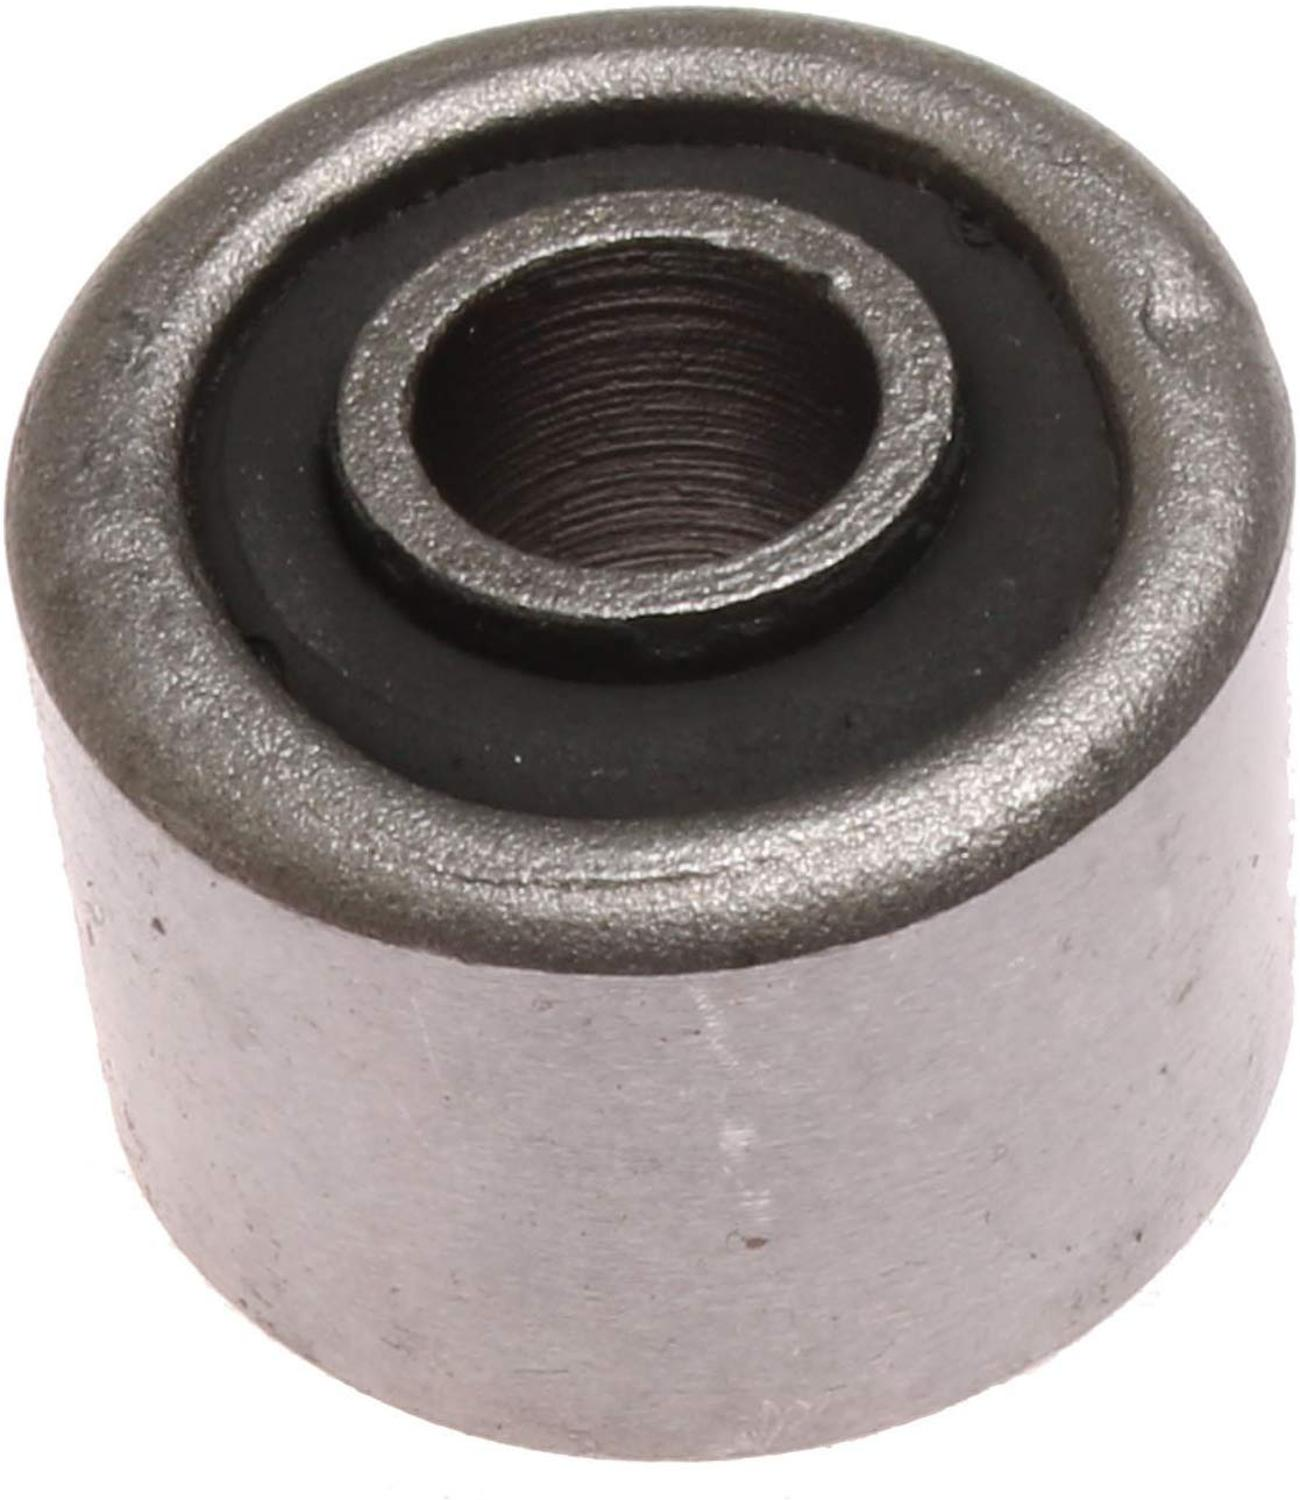 10 Pieces TORSION BUSHING For Bobcat S100 S130 S150 S160 S175 S185 S205 S220 S250 S300 SSL(China)